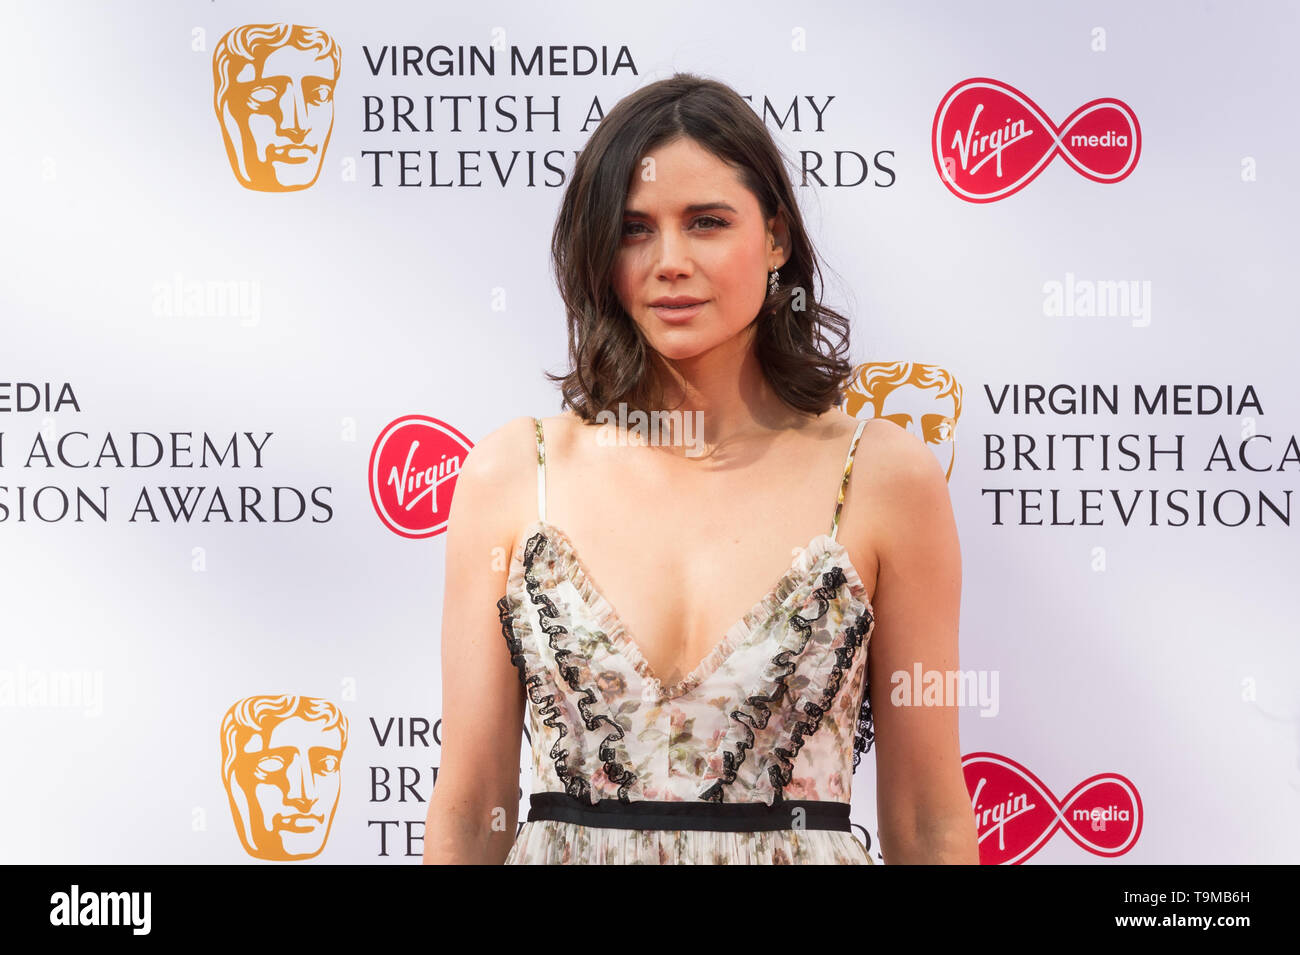 London, UK. 12th May 2019. Lilah Parsons attends the Virgin Media British Academy Television Awards ceremony at the Royal Festival Hall. Credit: Wiktor Szymanowicz/Alamy Live News - Stock Image